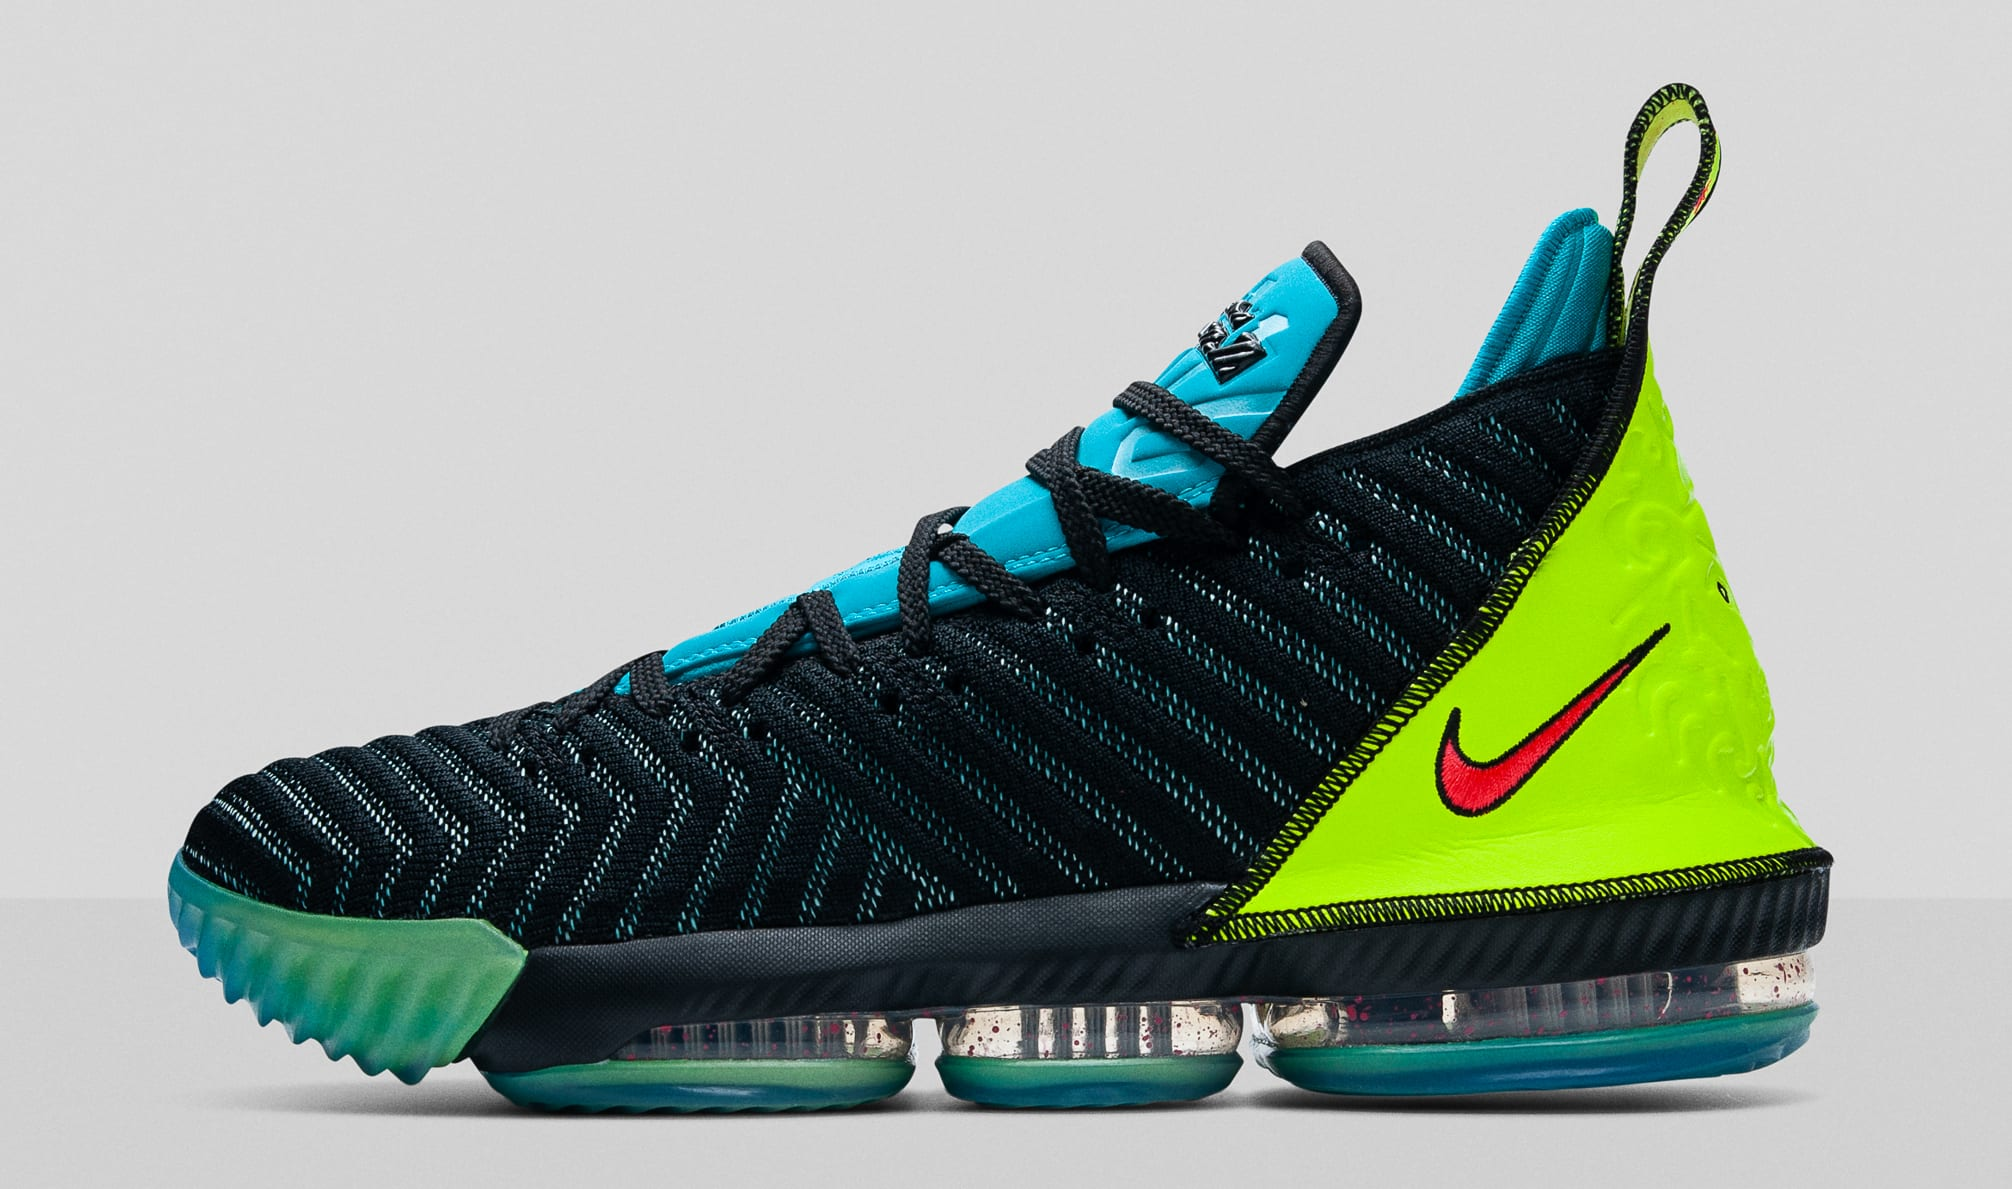 2019 WNBA All-Star Game Nike LeBron 16 PE